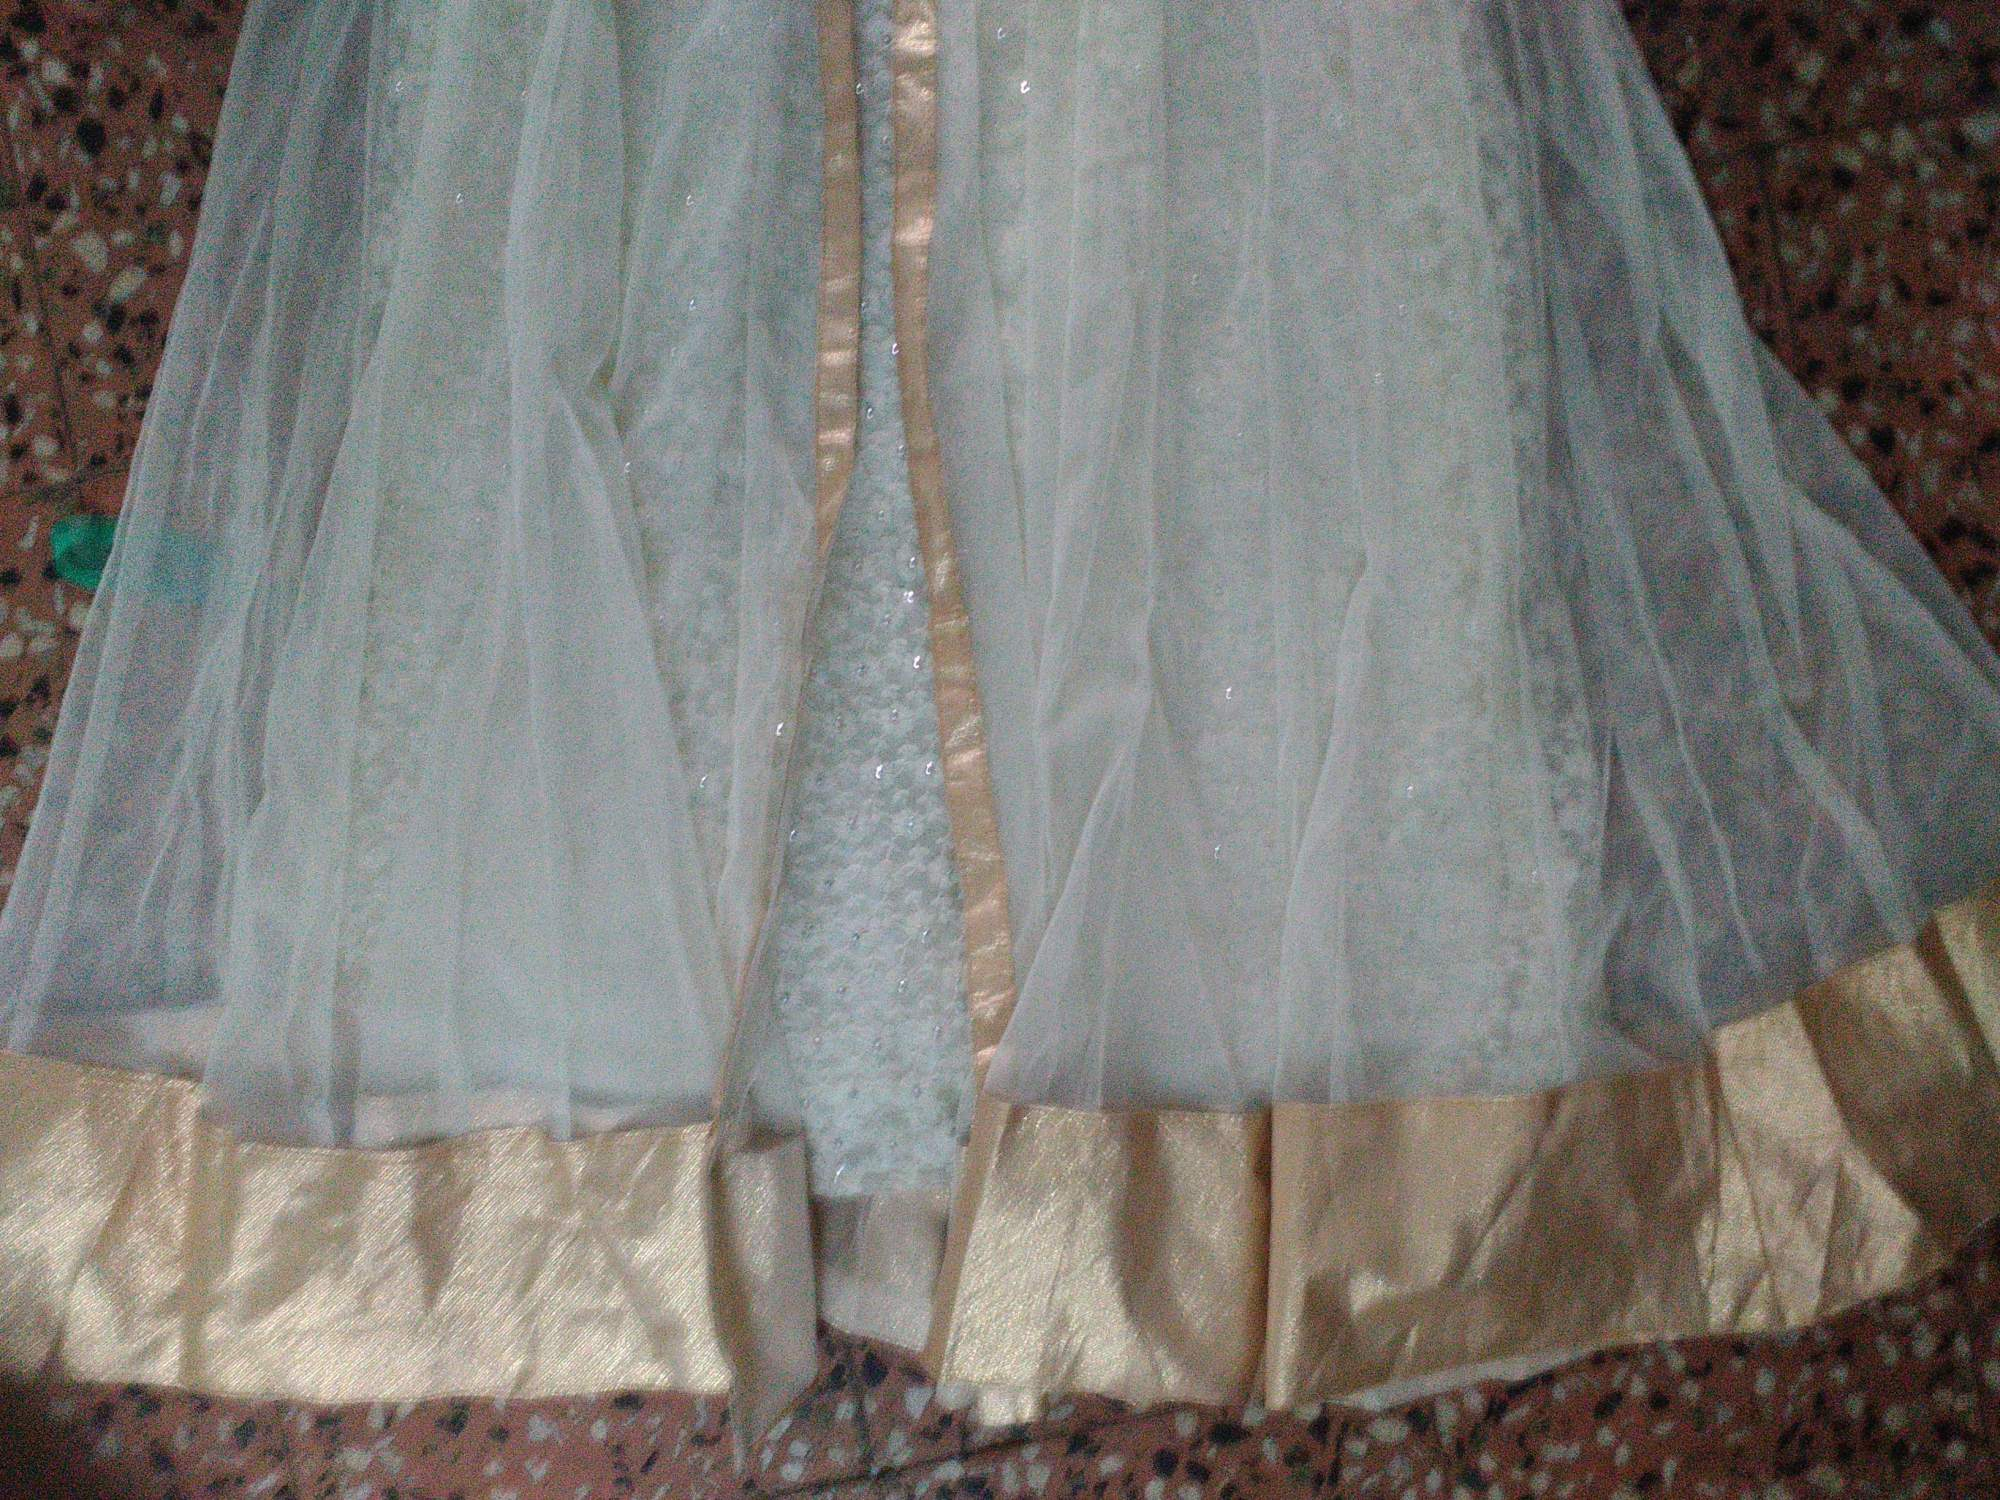 http://img.techshristi.com/images/embroideryshristi/embroiderydress2.jpg